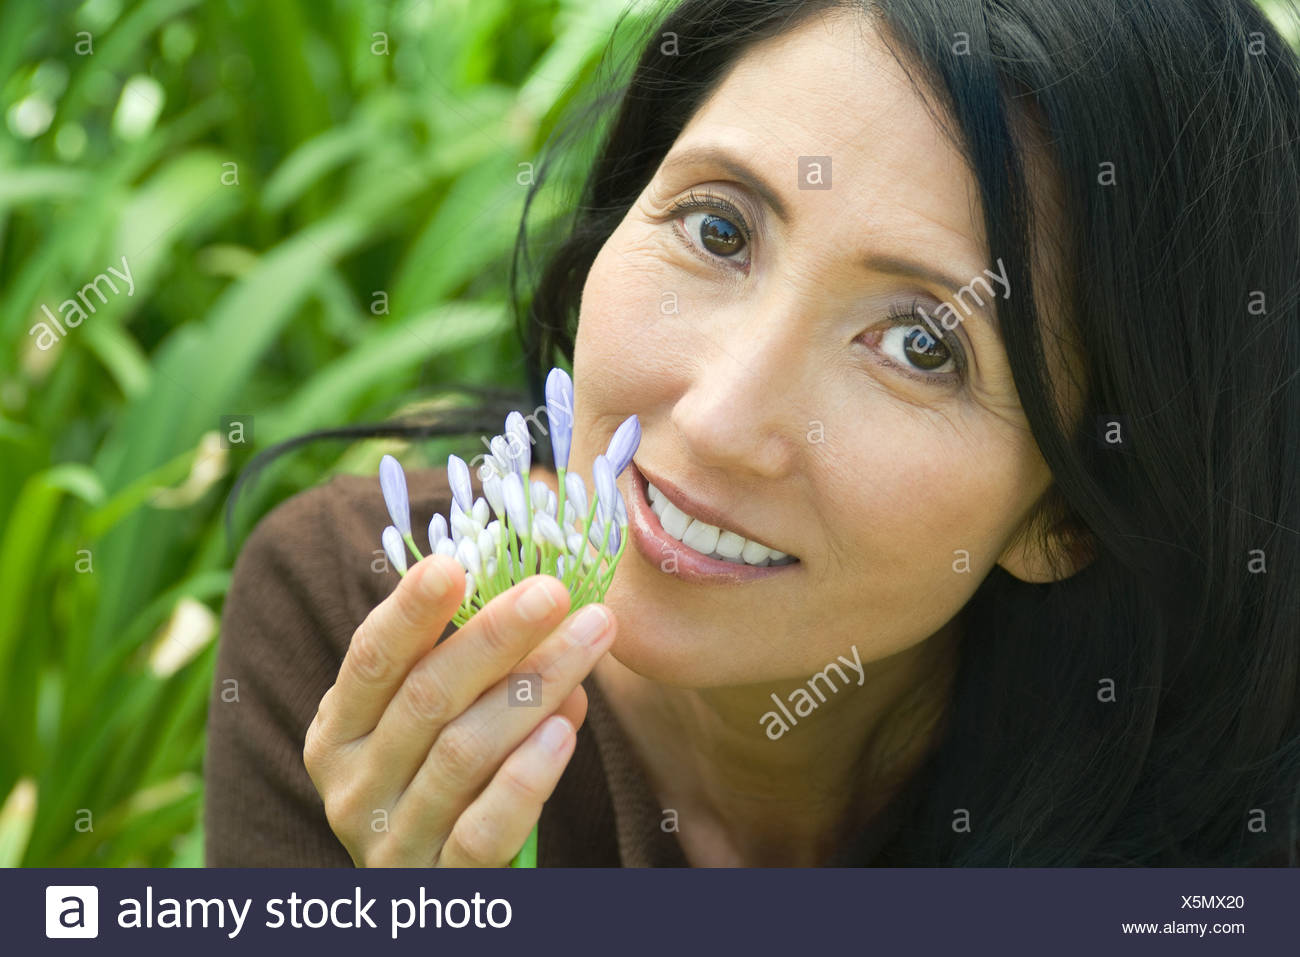 Mature woman smelling flower, smiling at camera, close-up - Stock Image